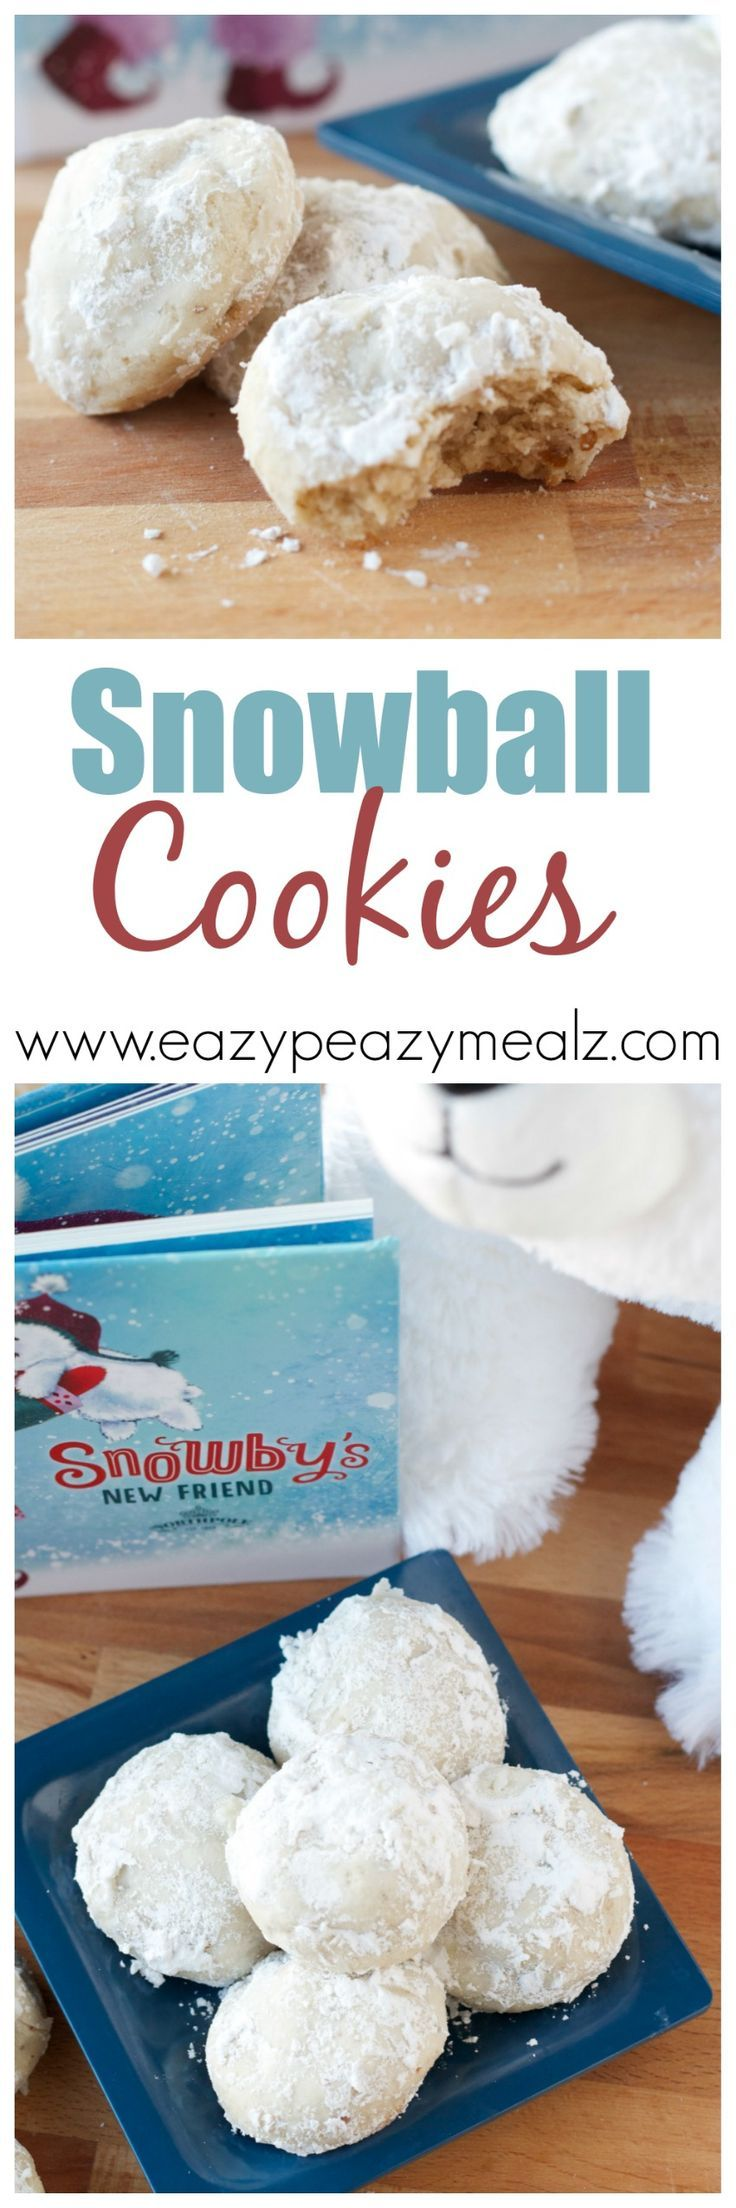 Snowball Cookies: AKA Mexican Wedding Cookies or Pecan Balls. These are soooo good. And with no eggs to crack, great to have kids help with! - Eazy Peazy Mealz